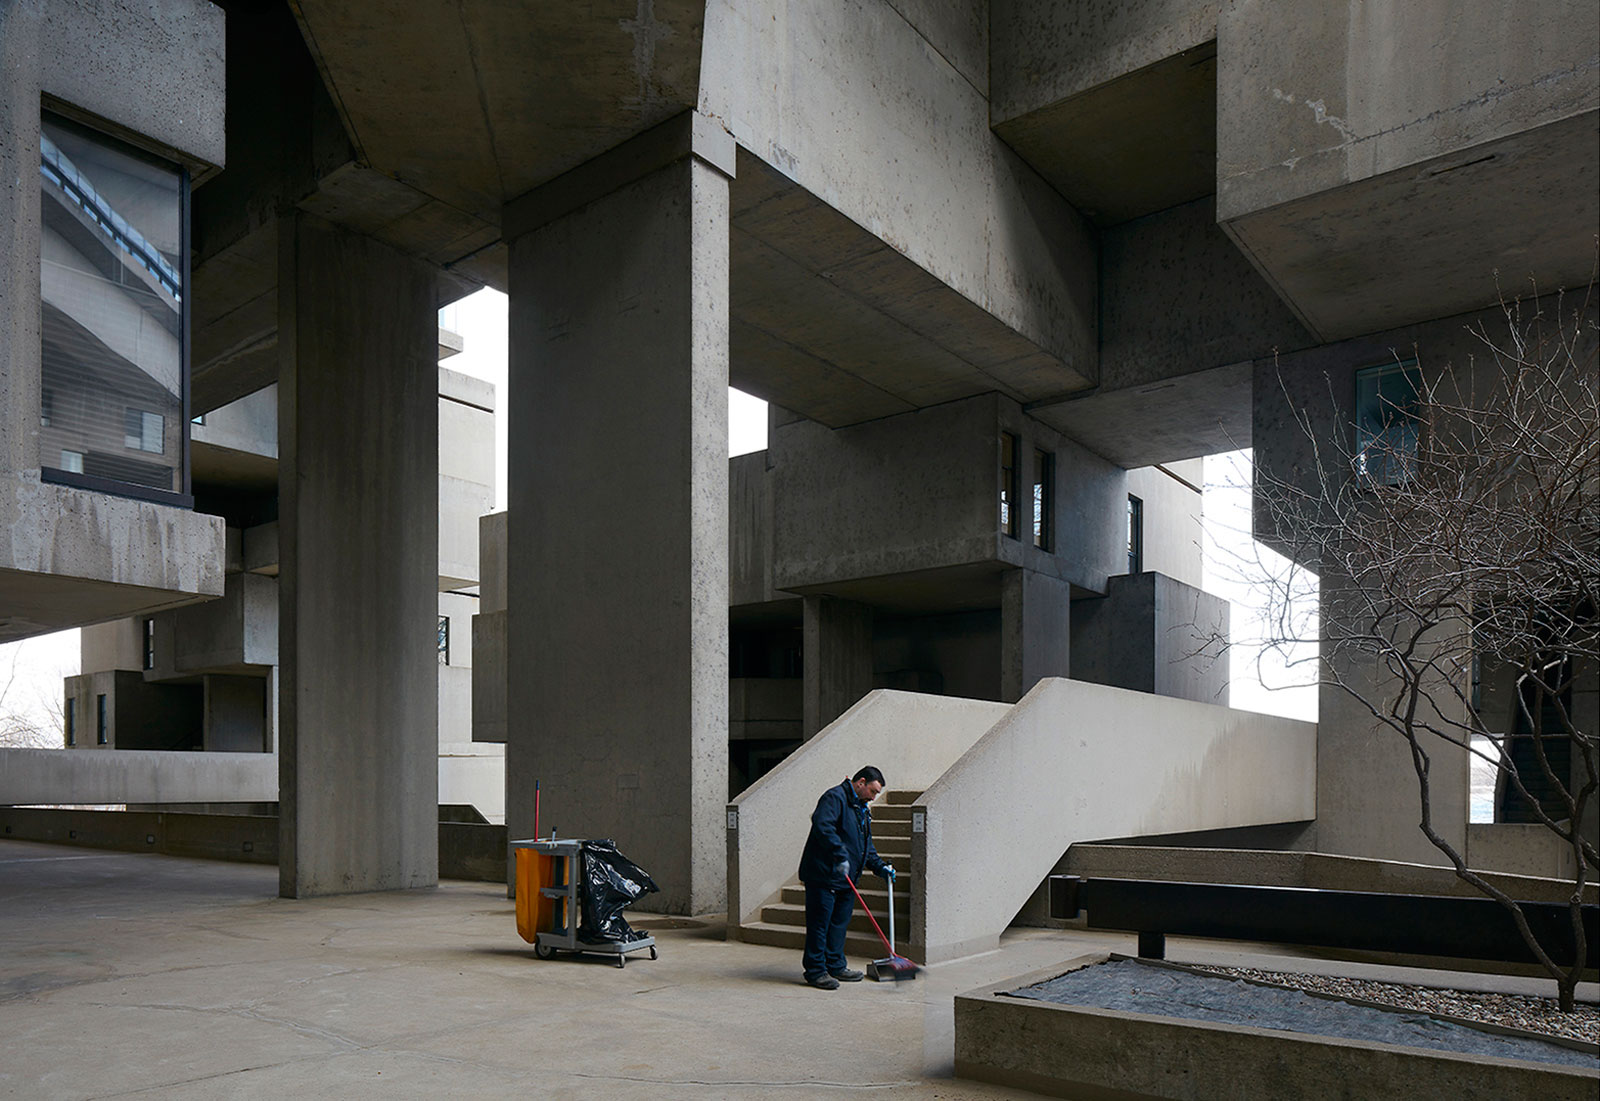 'Revisited: Habitat 67,' by James Brittain